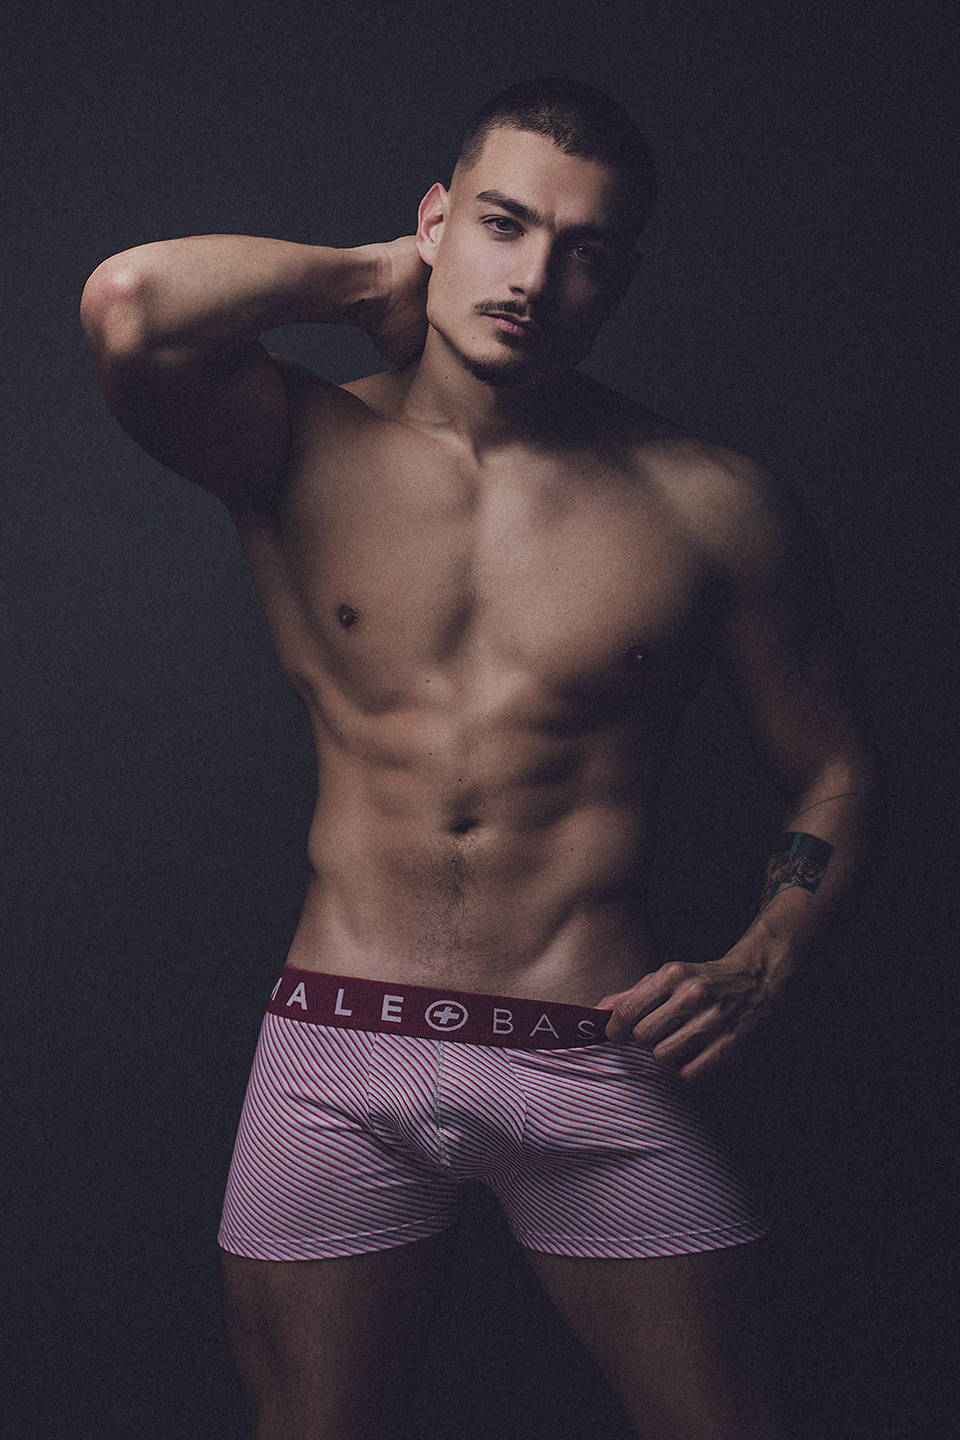 It's About The Man - Model | Carlos Exposito Photographed by Adrian C. Martin wearing Male Basics Boxer Shorts and Briefs | Men in underwear, Model in Underwear, Male Basics Underwear, Shirtless Male